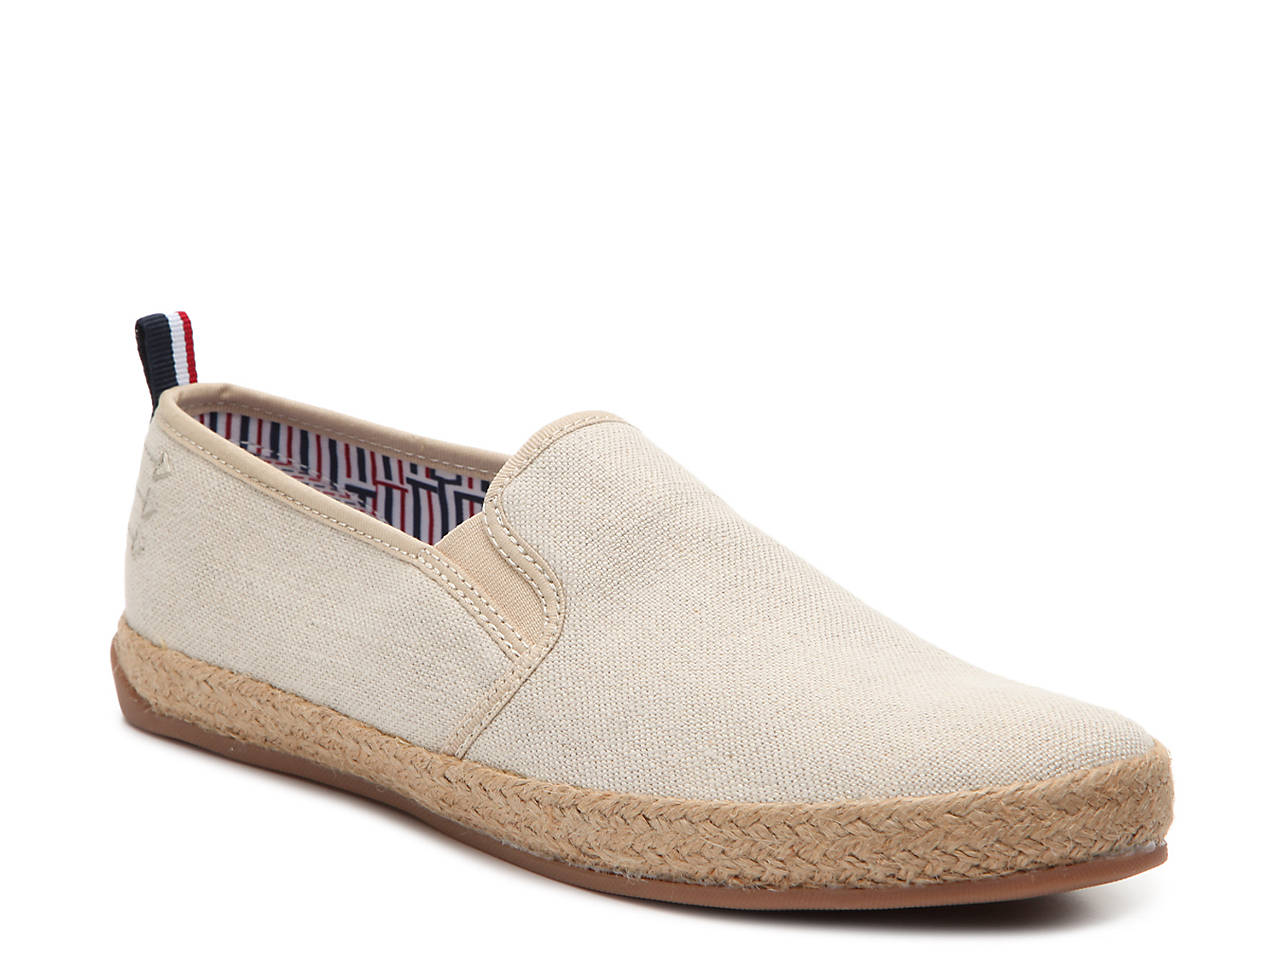 Wide Range Of Cheap Online Extremely For Sale New Jenson Slip-On Espadrilles i65P8S1l